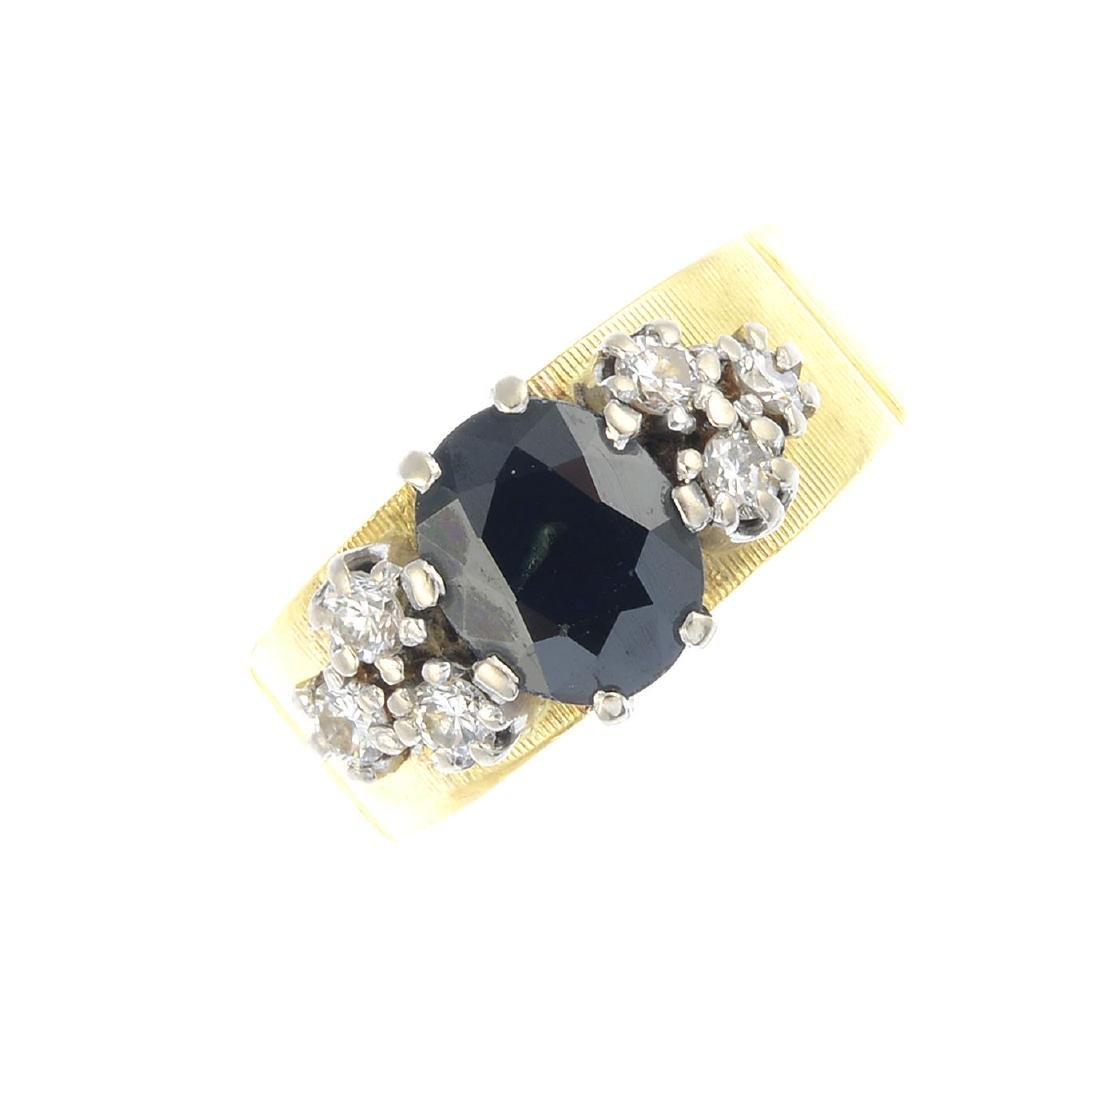 A 1970s 18ct gold sapphire and diamond dress ring. The